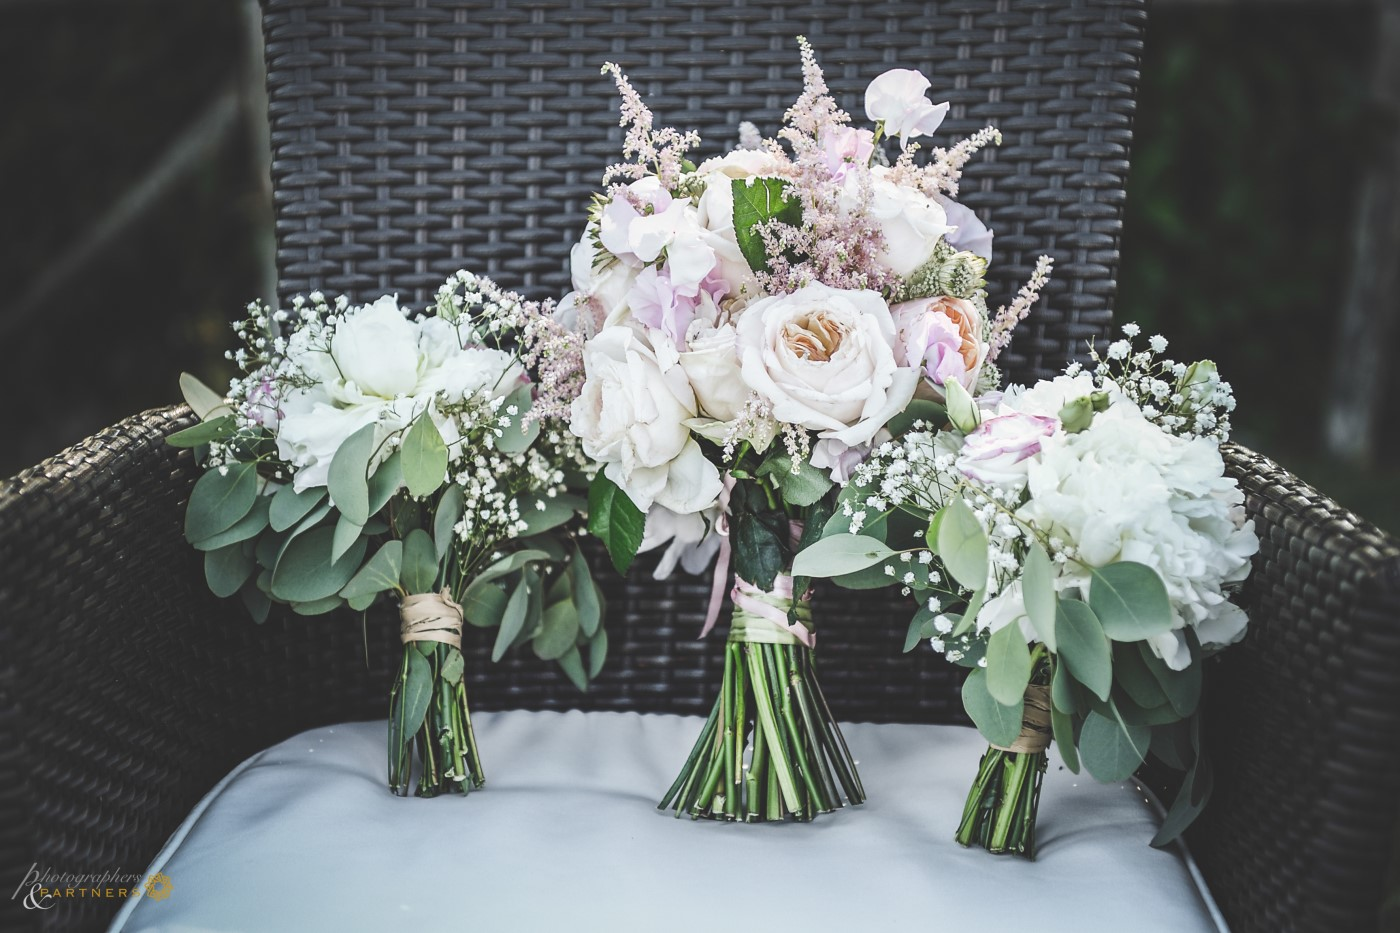 The wedding flowers.